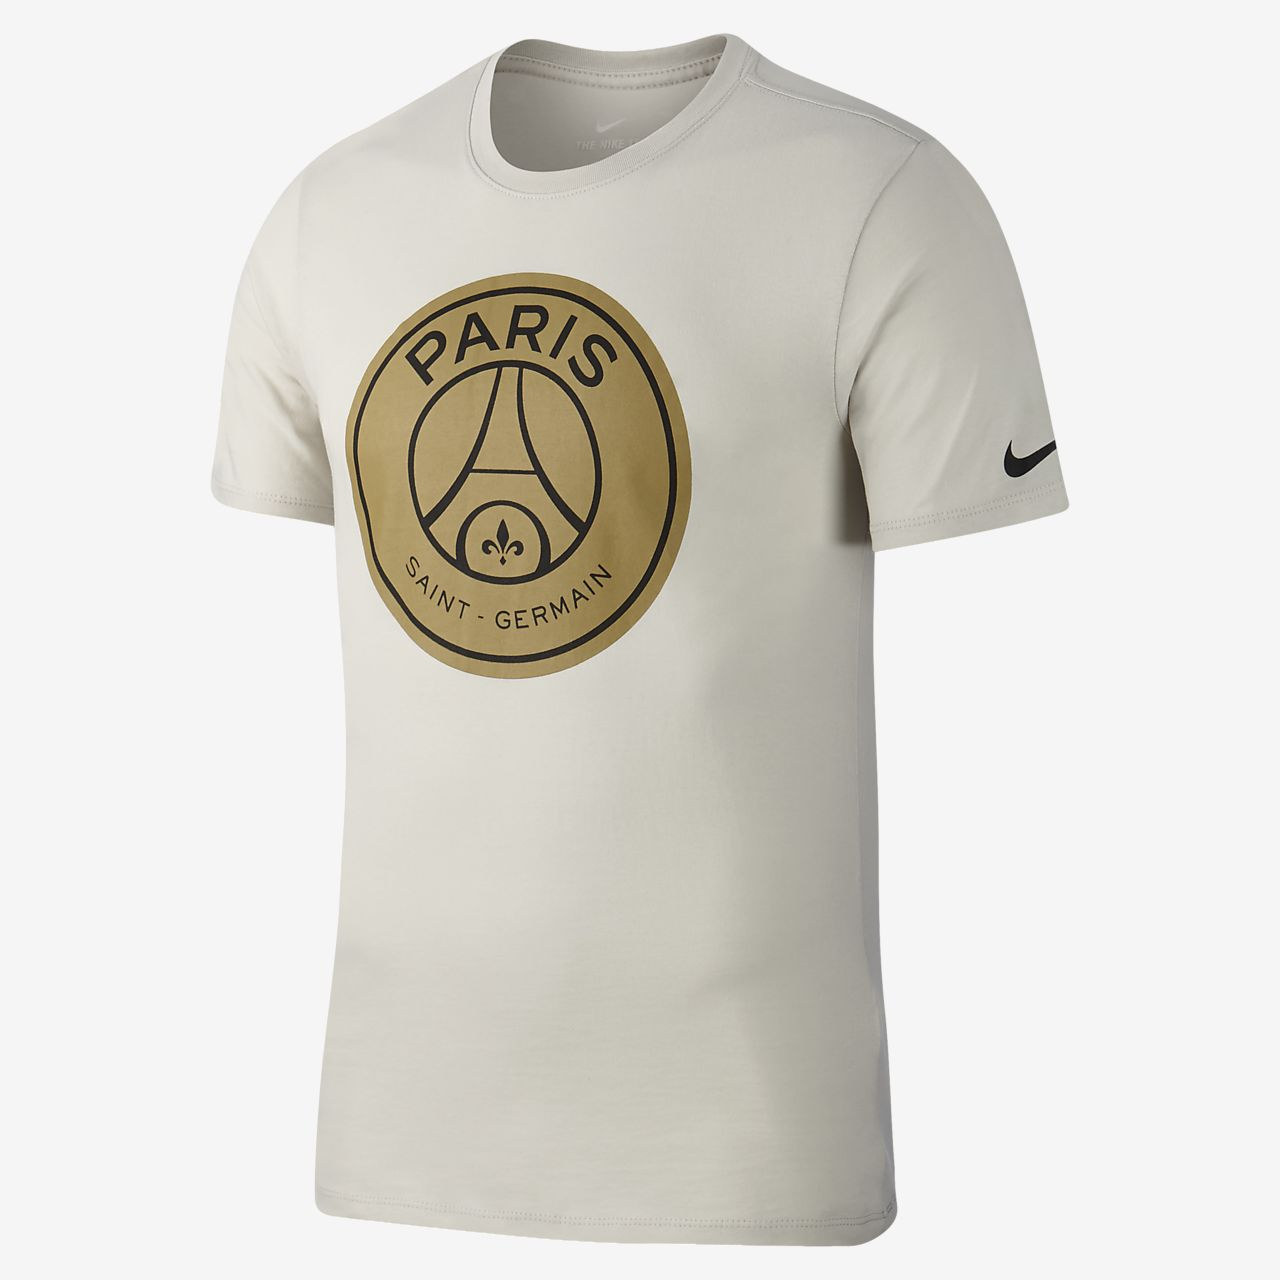 eee122d51 Paris Saint-Germain Crest Men s T-Shirt. Nike.com GB